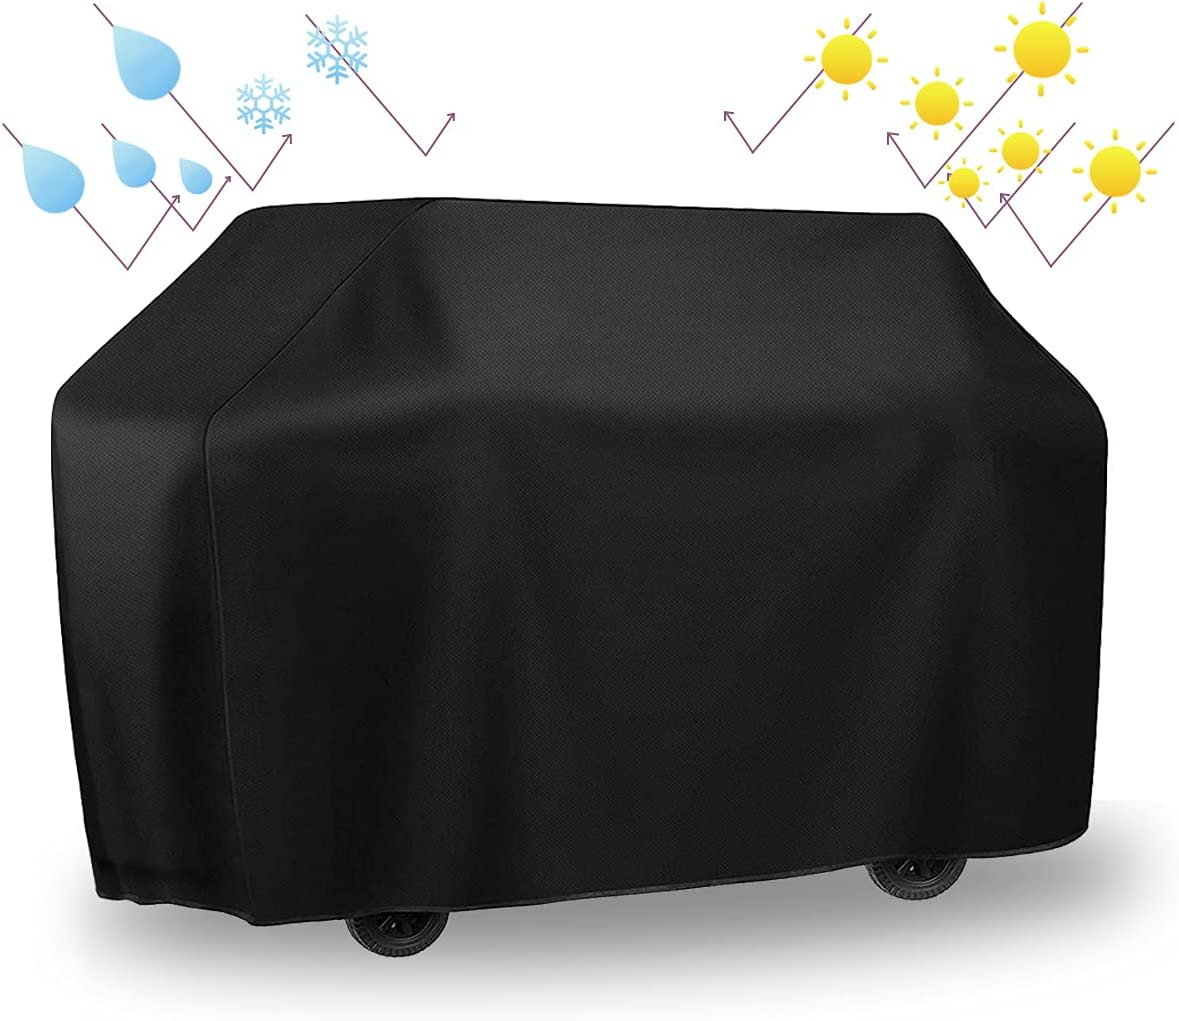 BBQ Grill Cover favorite 65 Max 52% OFF Inch with Waterproof Storage Resist Fade Bag